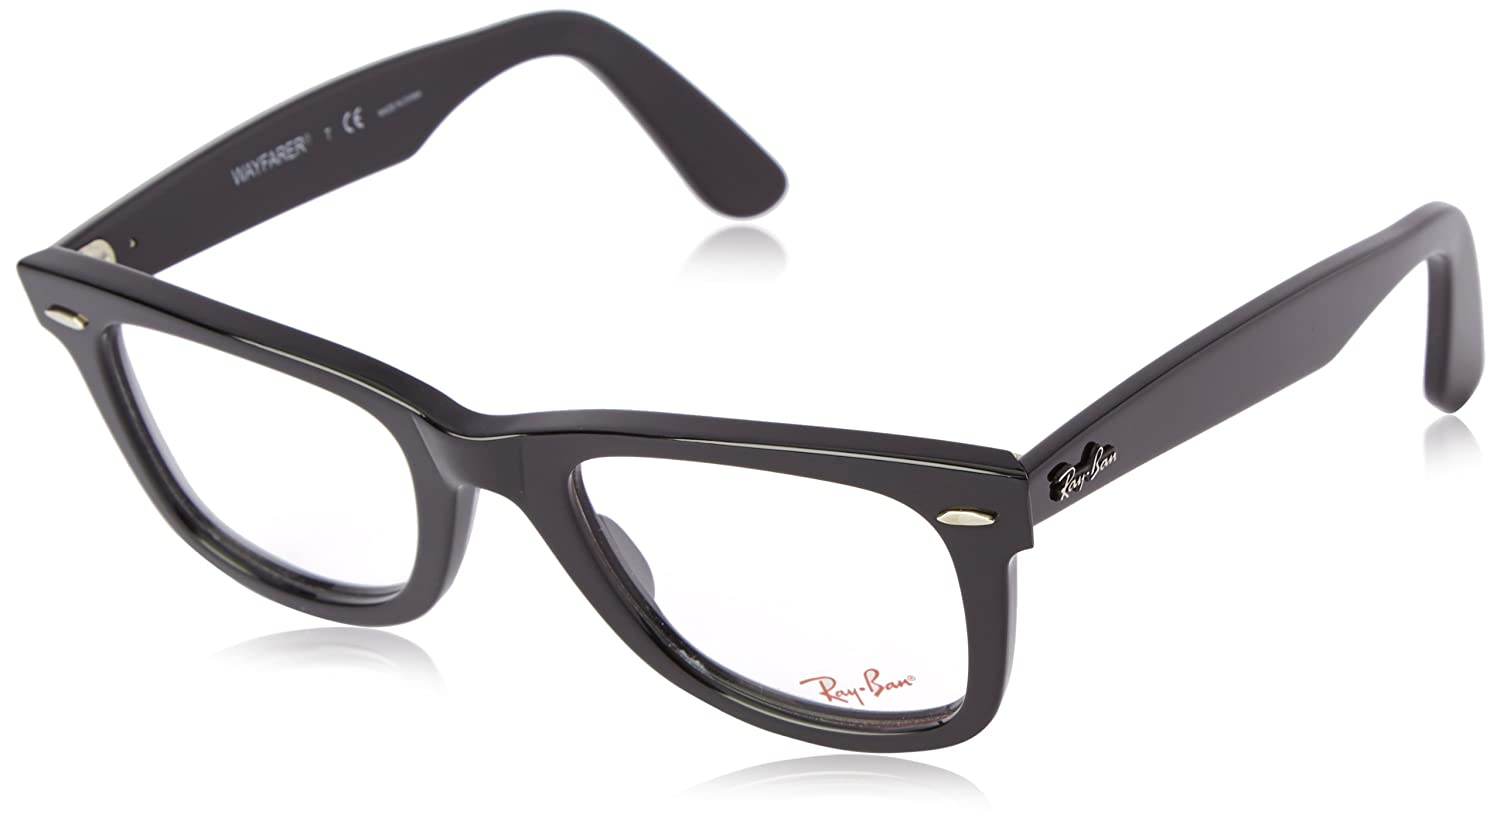 1007a3eff81 ray ban eyeglasses for women 51mm ray-ban glasses framed black and white